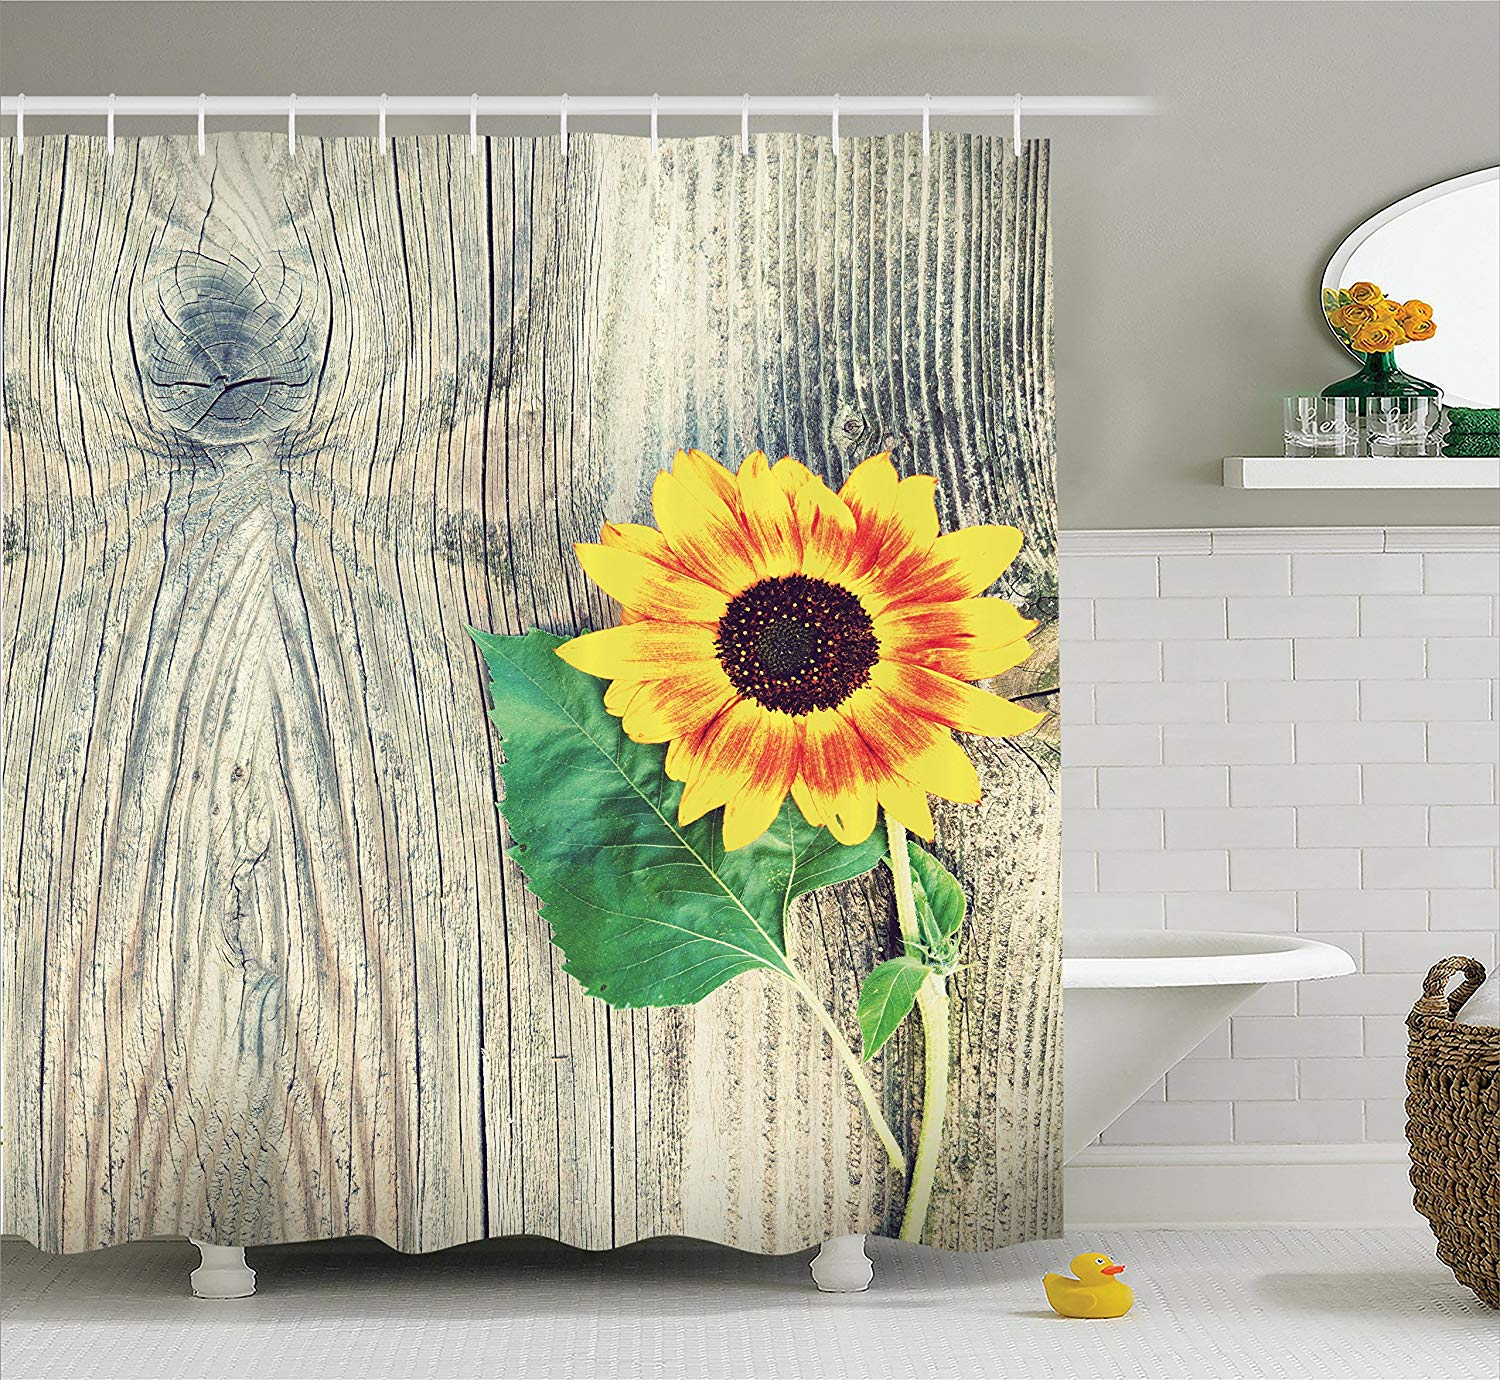 Us 17 24 31 Off Sunflower Shower Curtain On Wooden Old Board Bouqet Fl Gifts Of Mother Earth Artsy Photo Bathroom Decor In